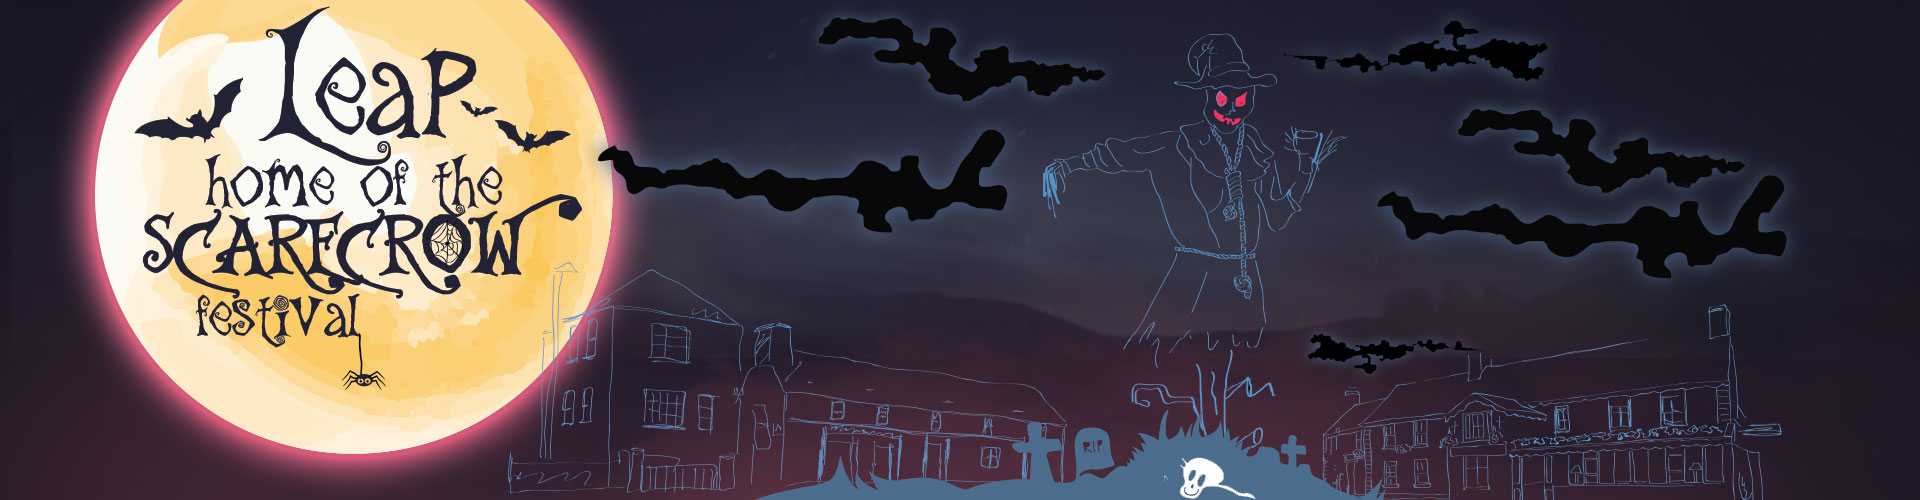 leap-home-of-the-scarecrow-header2